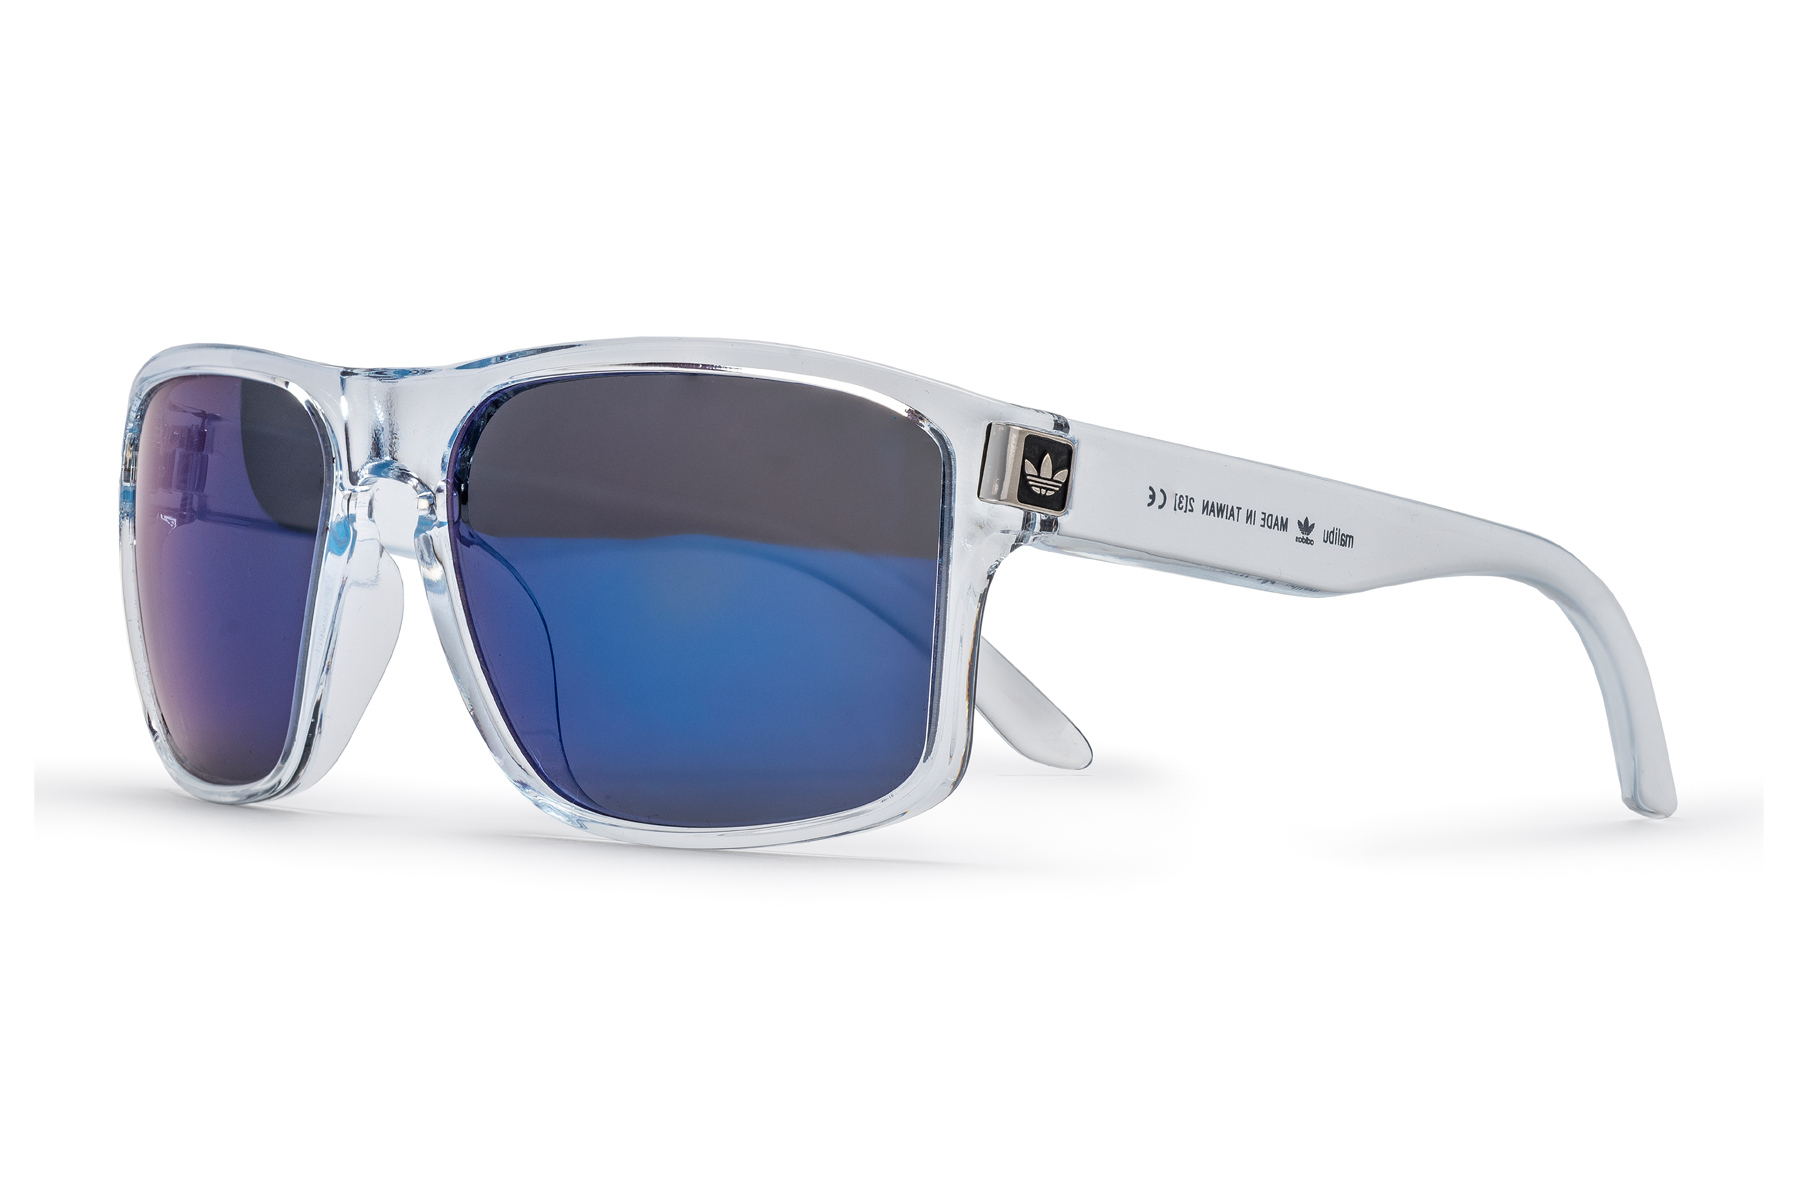 adidas originals 2014 summer eyewear collection